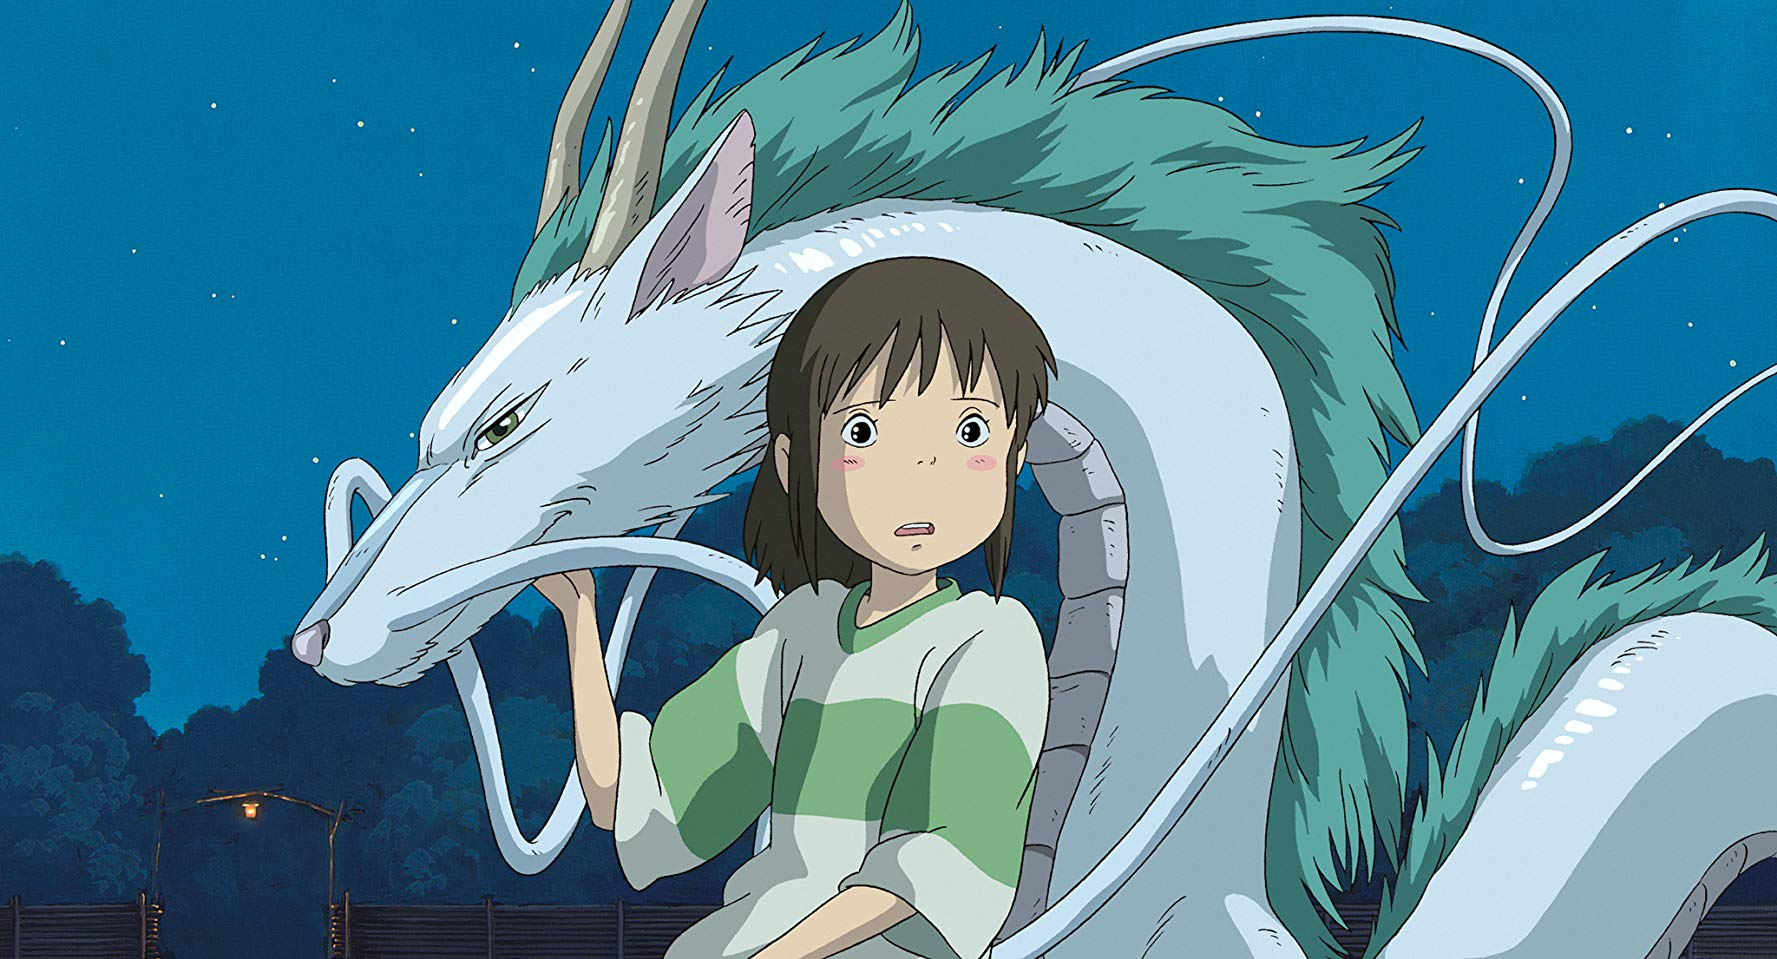 Spirited Away,' other Studio Ghibli films head to HBO Max